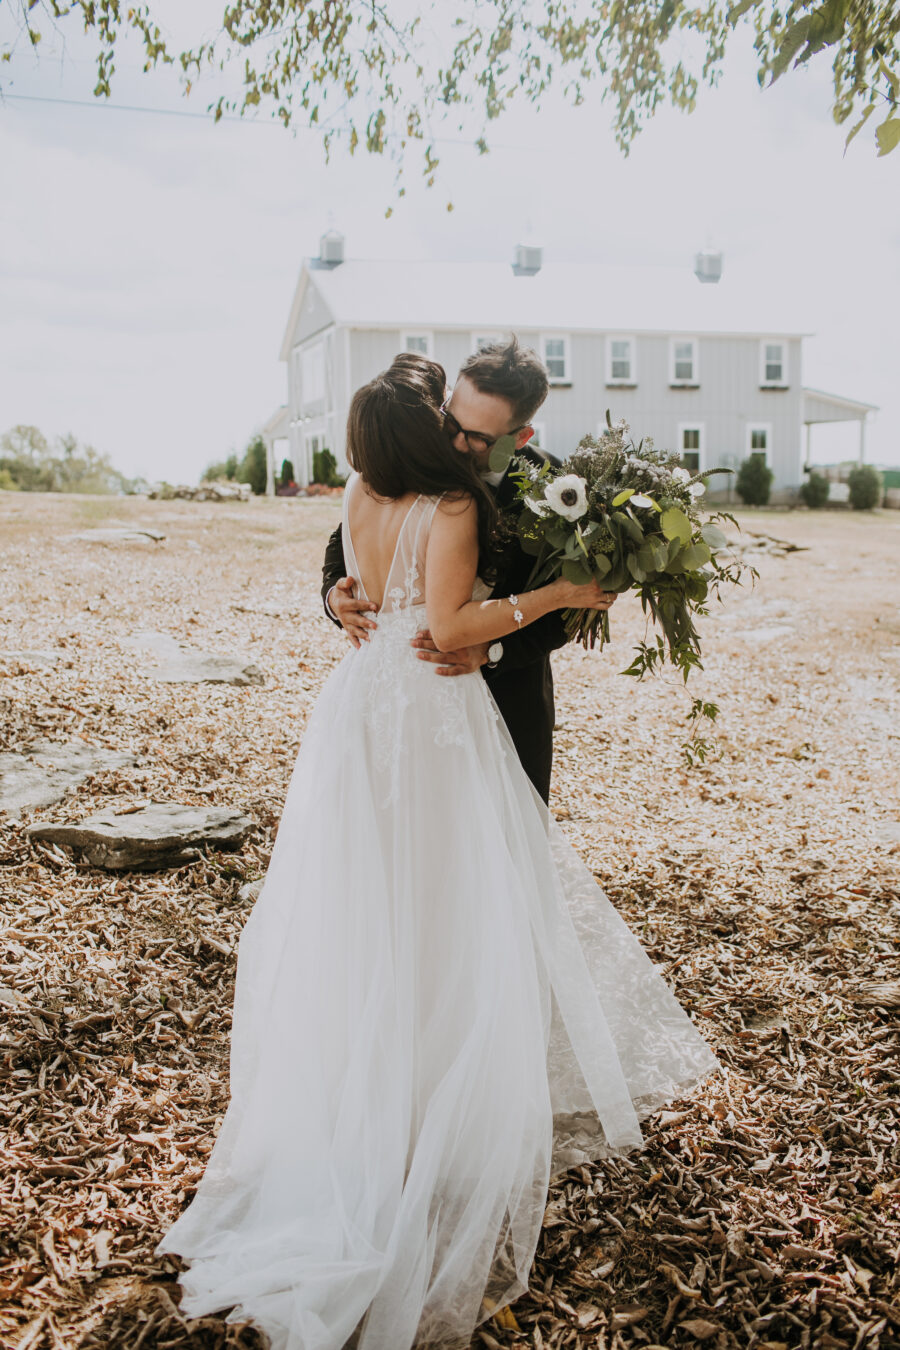 Wedding first look: Nashville Wedding with Beautiful Views by Teale Photography featured on Nashville Bride Guide